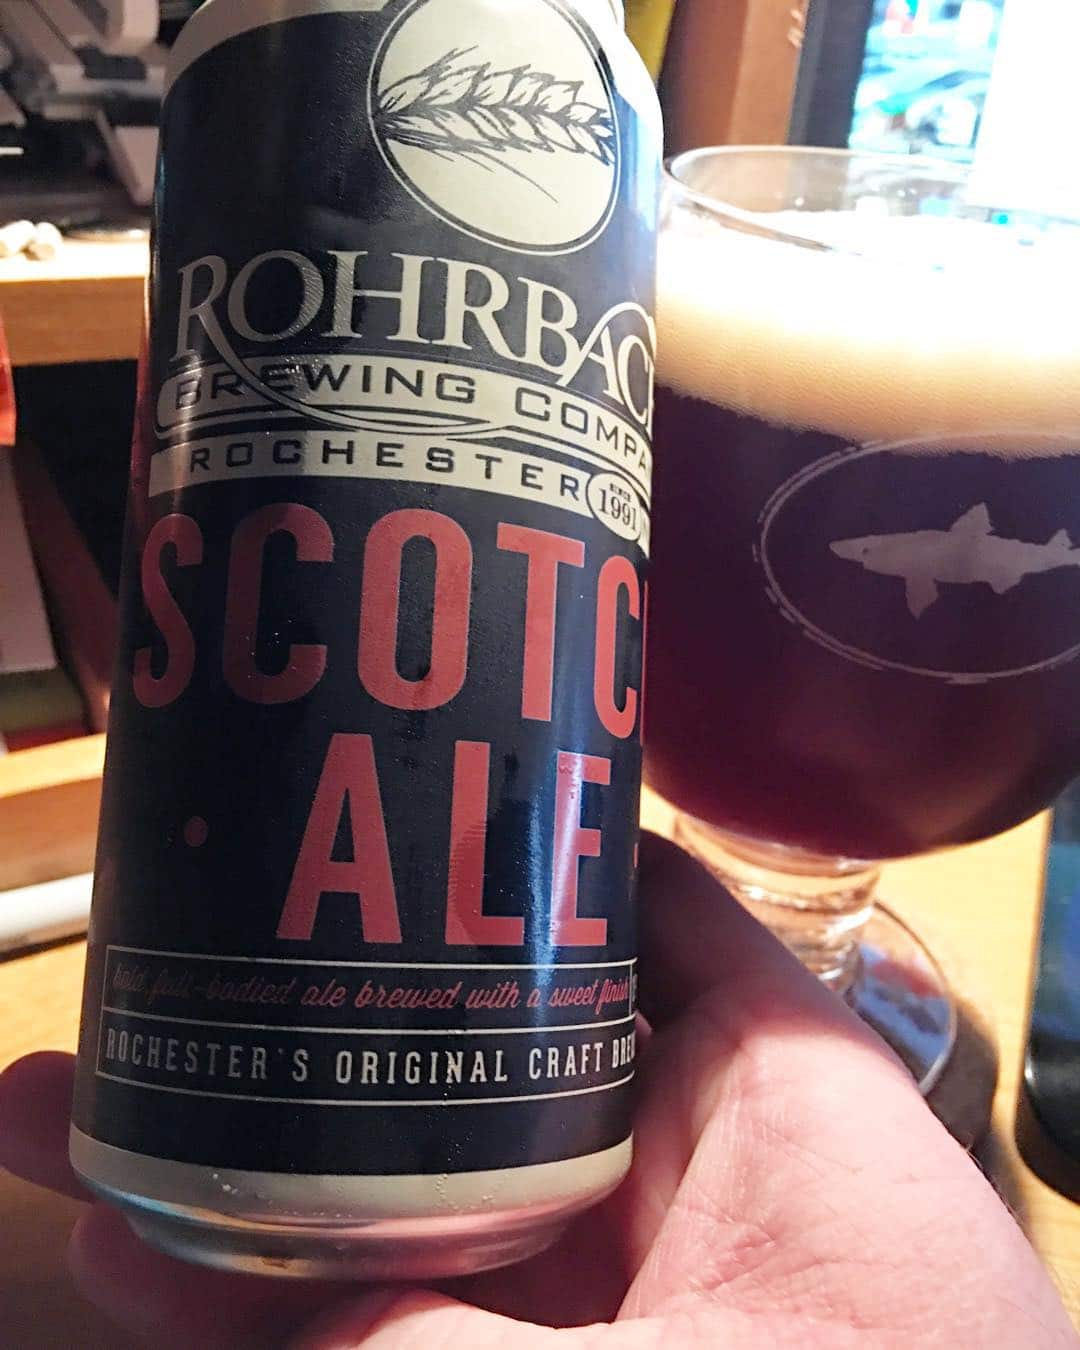 @rohrbach_brewing Scotch Ale. I always saw this in the store and never picked it up. It had a nice maltiness to it. Definitely a scotch ale, this baby warmed me up. I'm really glad these guys started canning because I can now try almost all their normal brews.